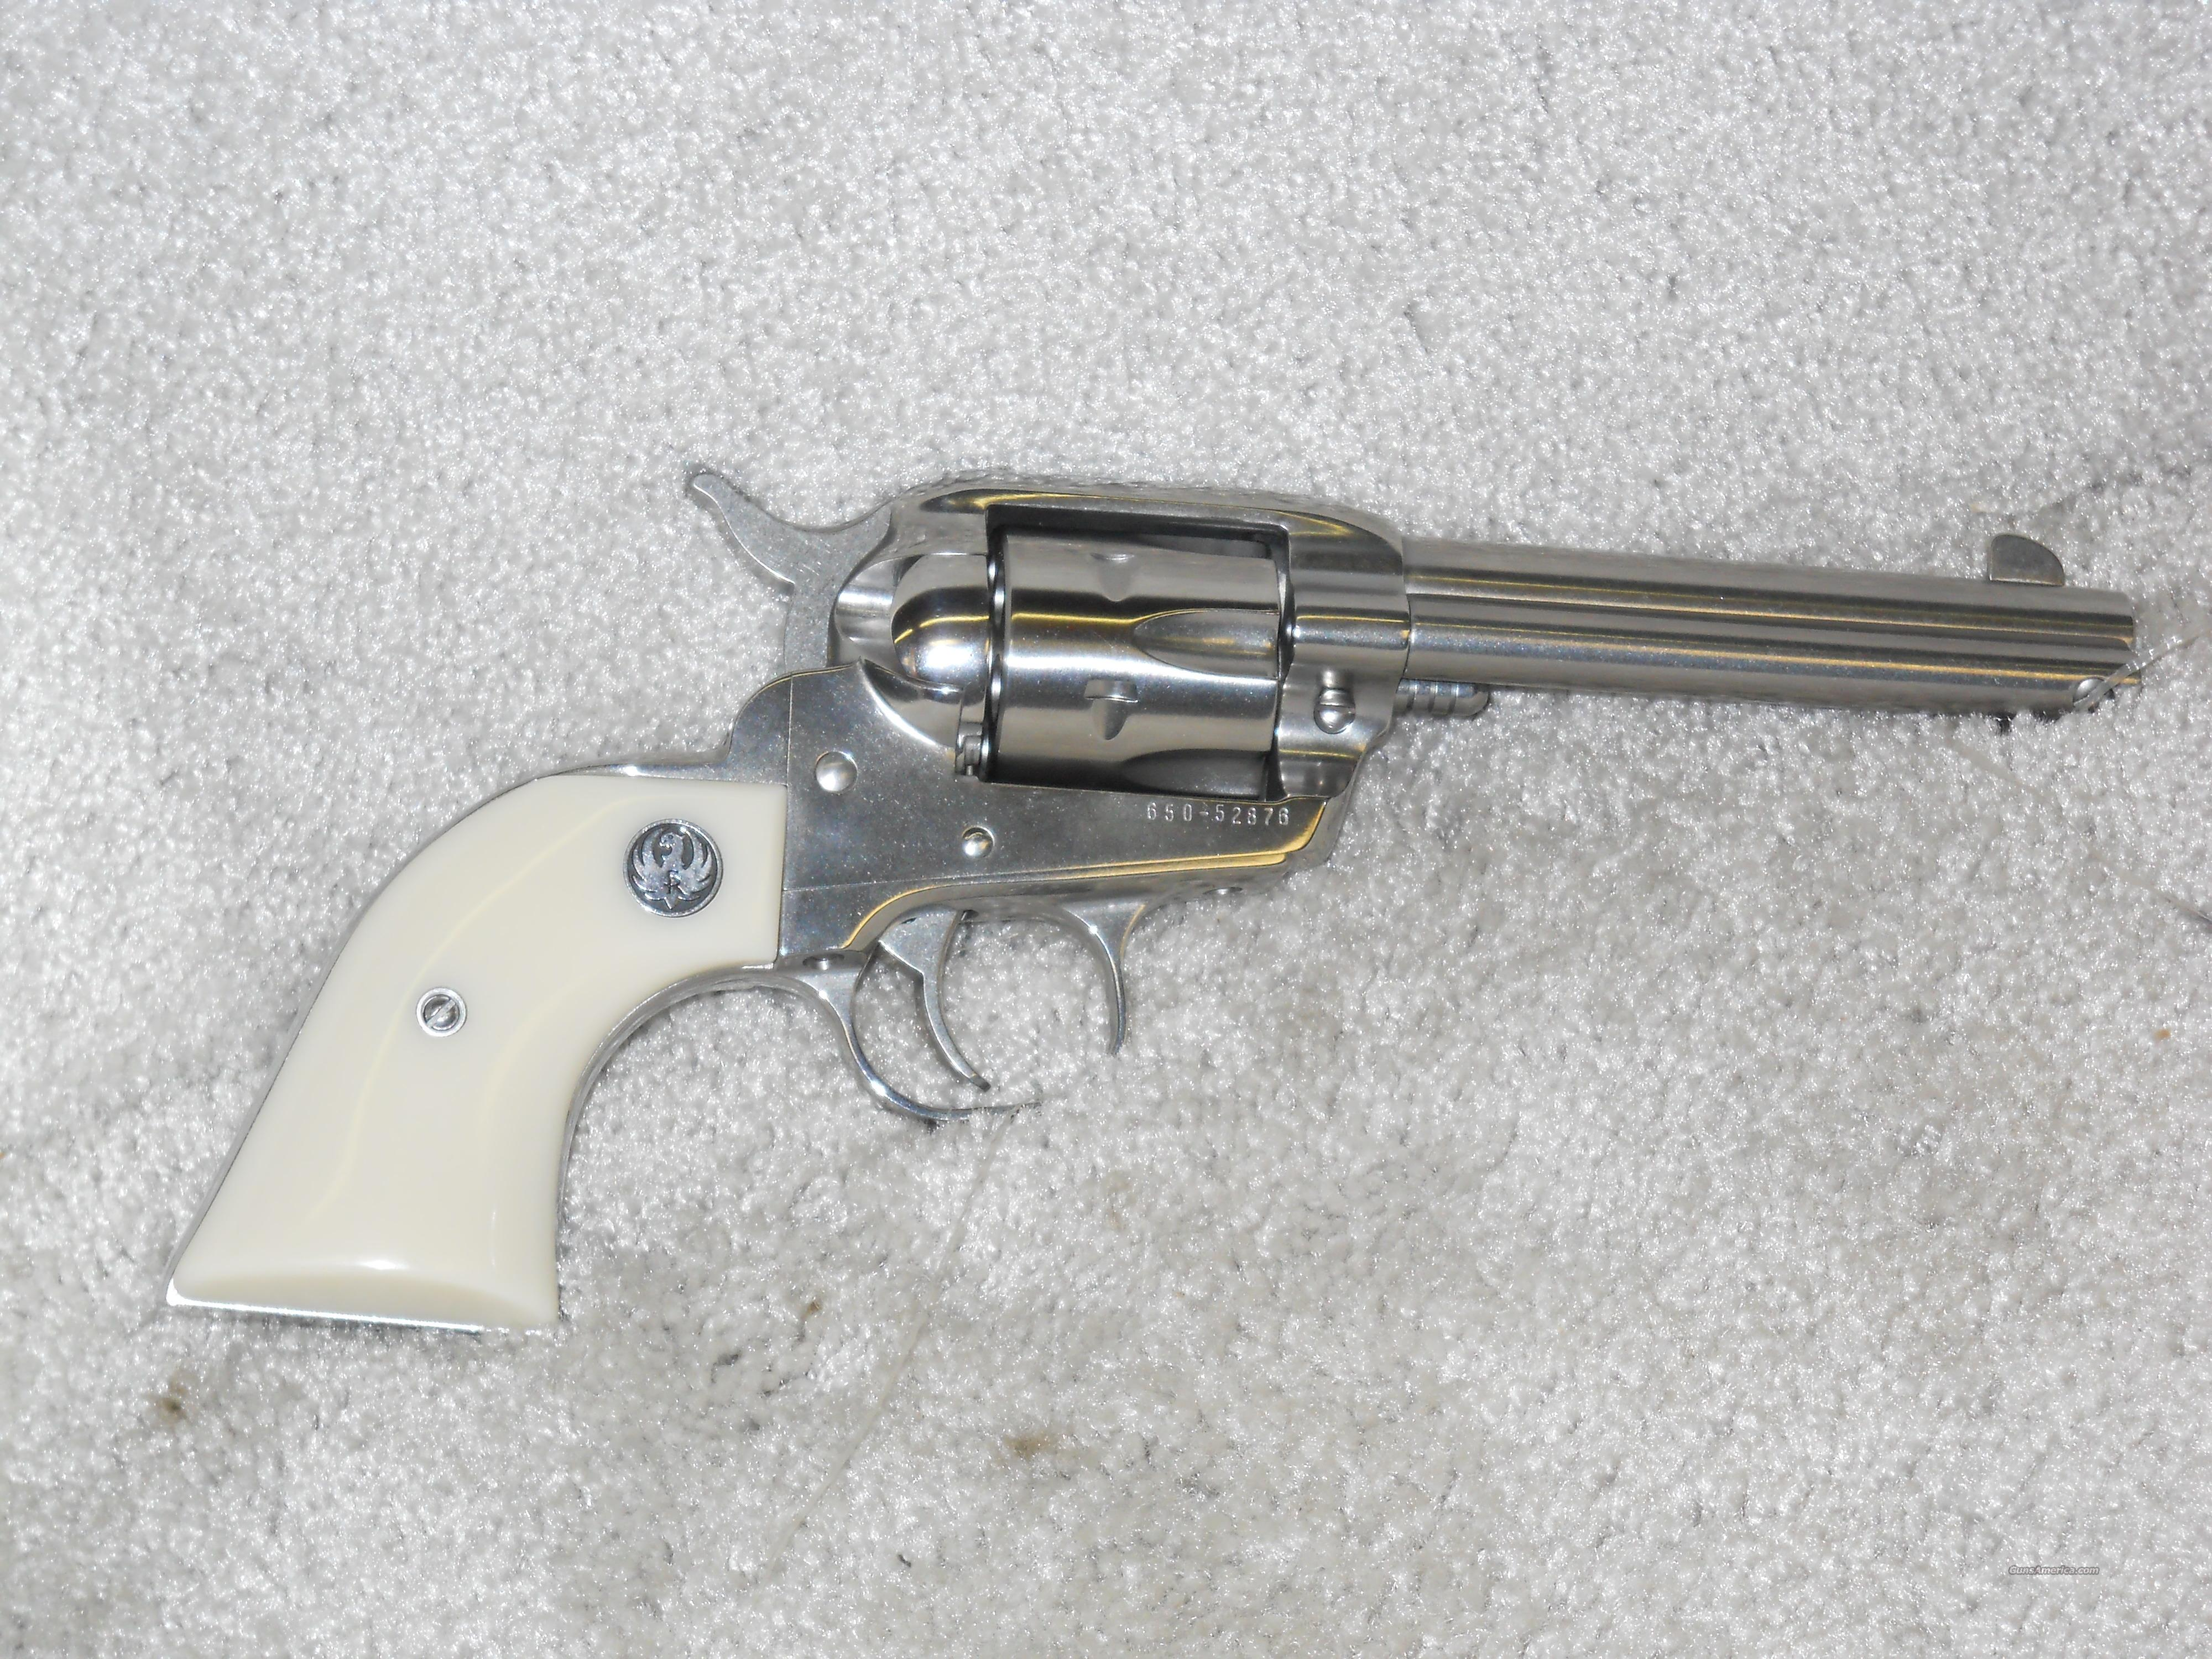 Ruger, Model: Single Six, Cal.32 H&R Mag.  Guns > Pistols > Ruger Single Action Revolvers > Single Six Type